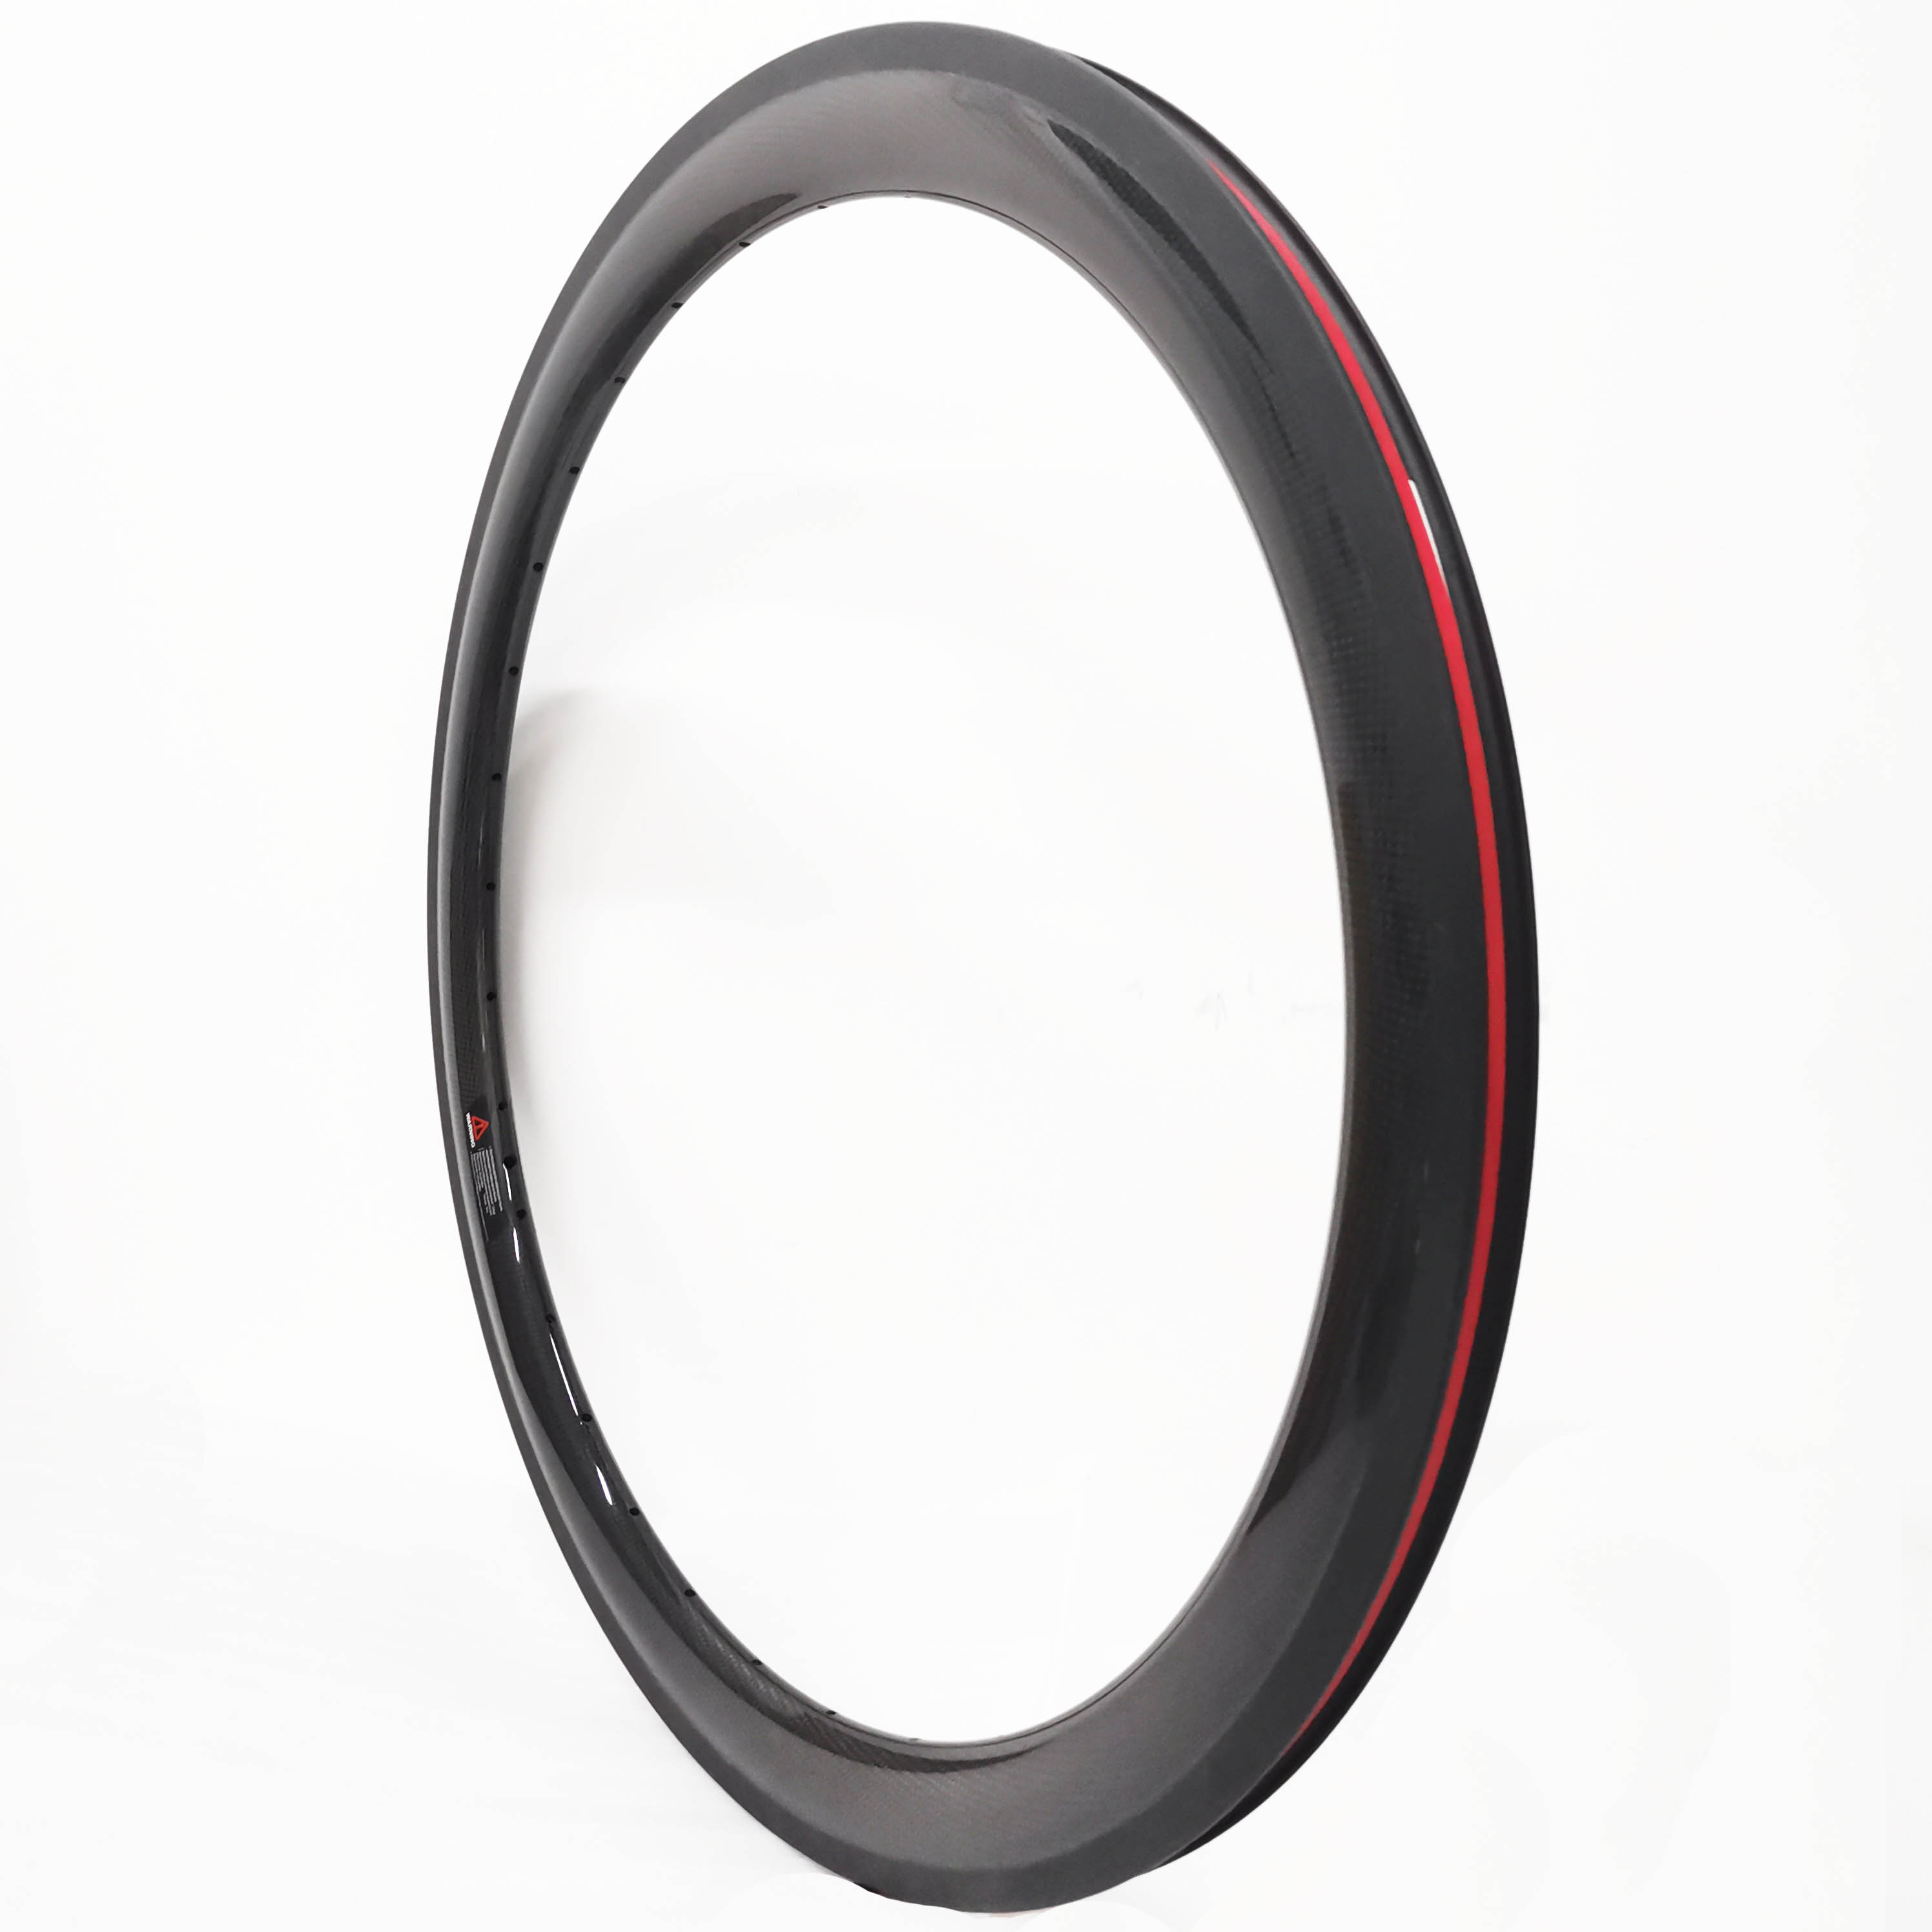 NGT 50mm Clincher 32 holes 3k glossy basalt brake side half price sale factory biggest promotion